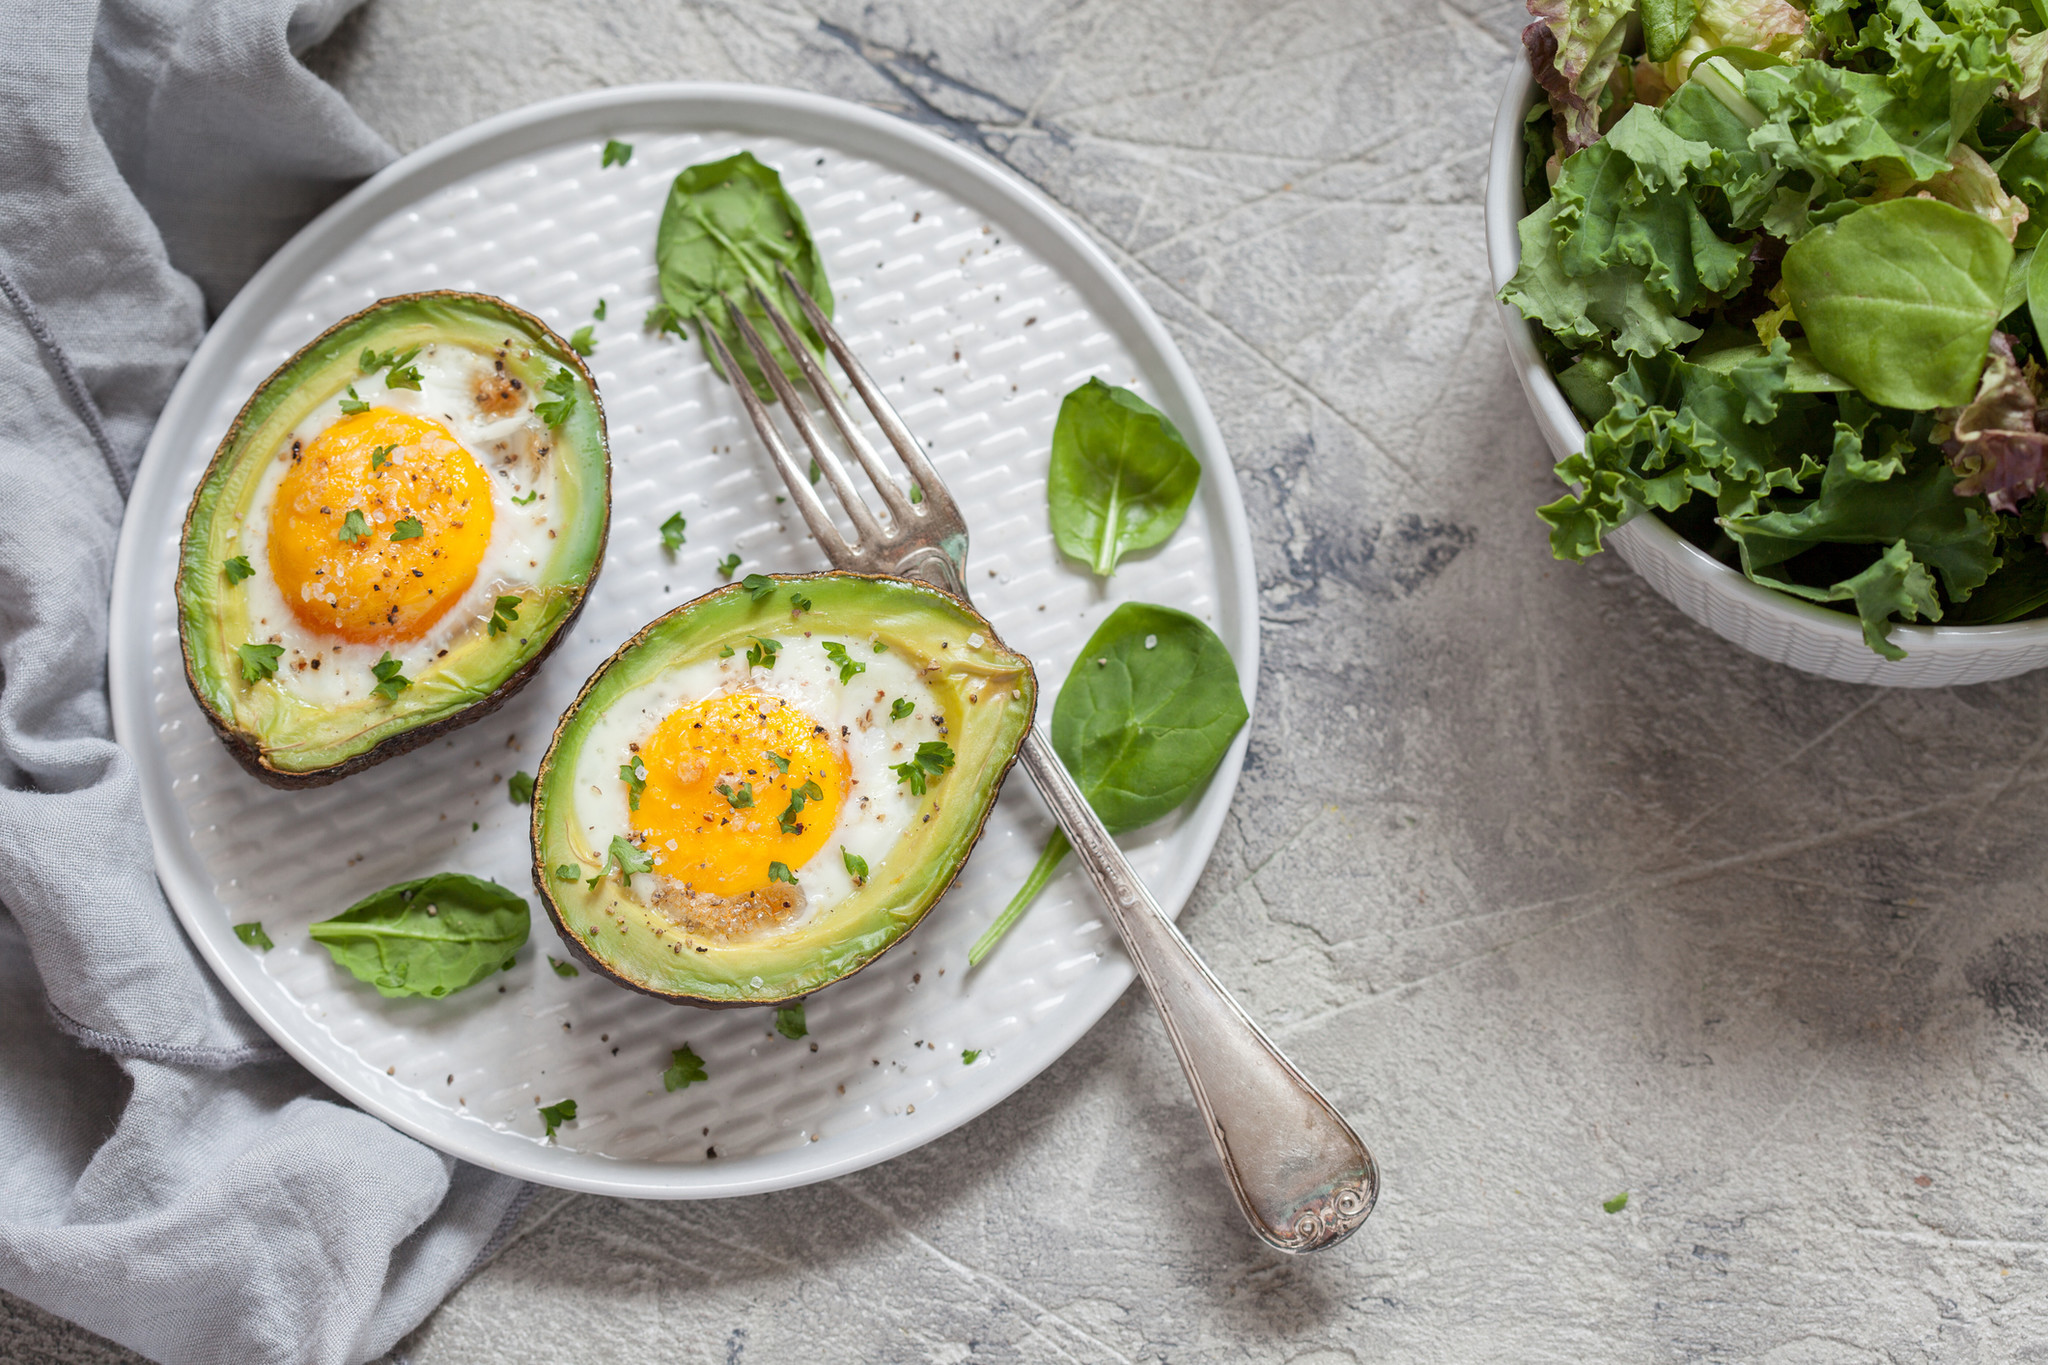 Keto Pure Diet Review – Is the keto diet safe?